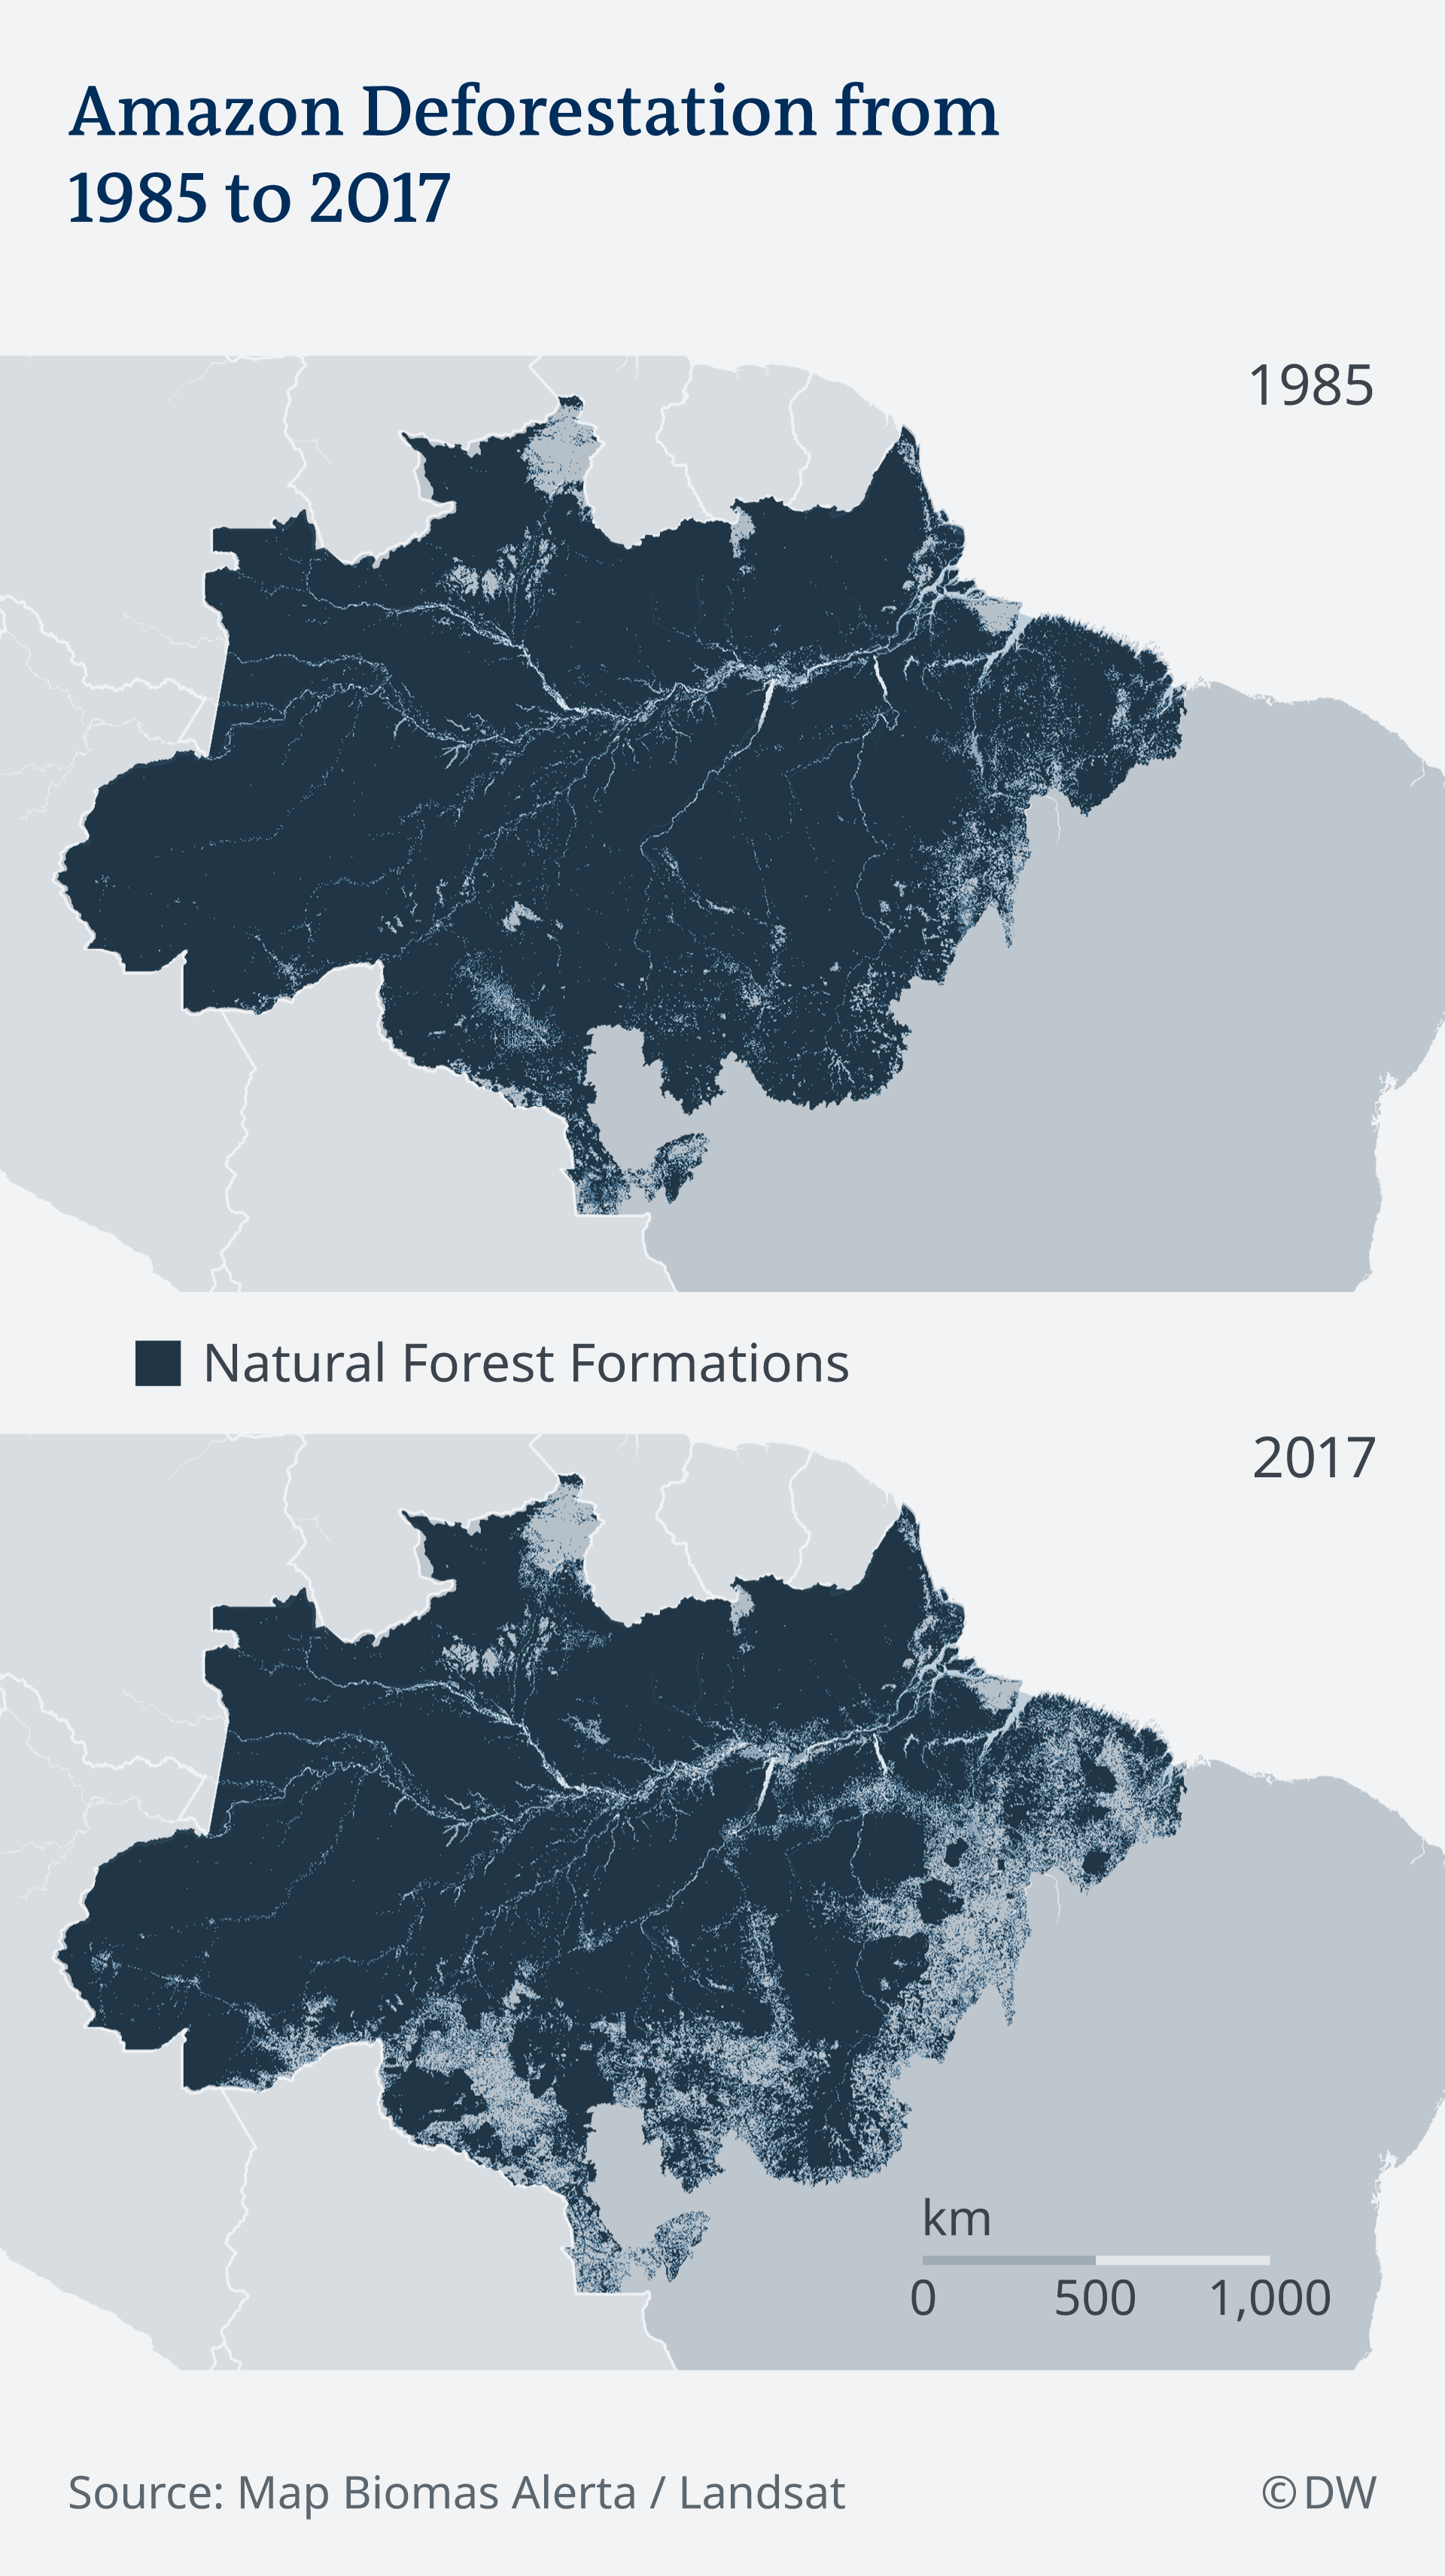 Deforestation in Amazon from 1985 to 2017